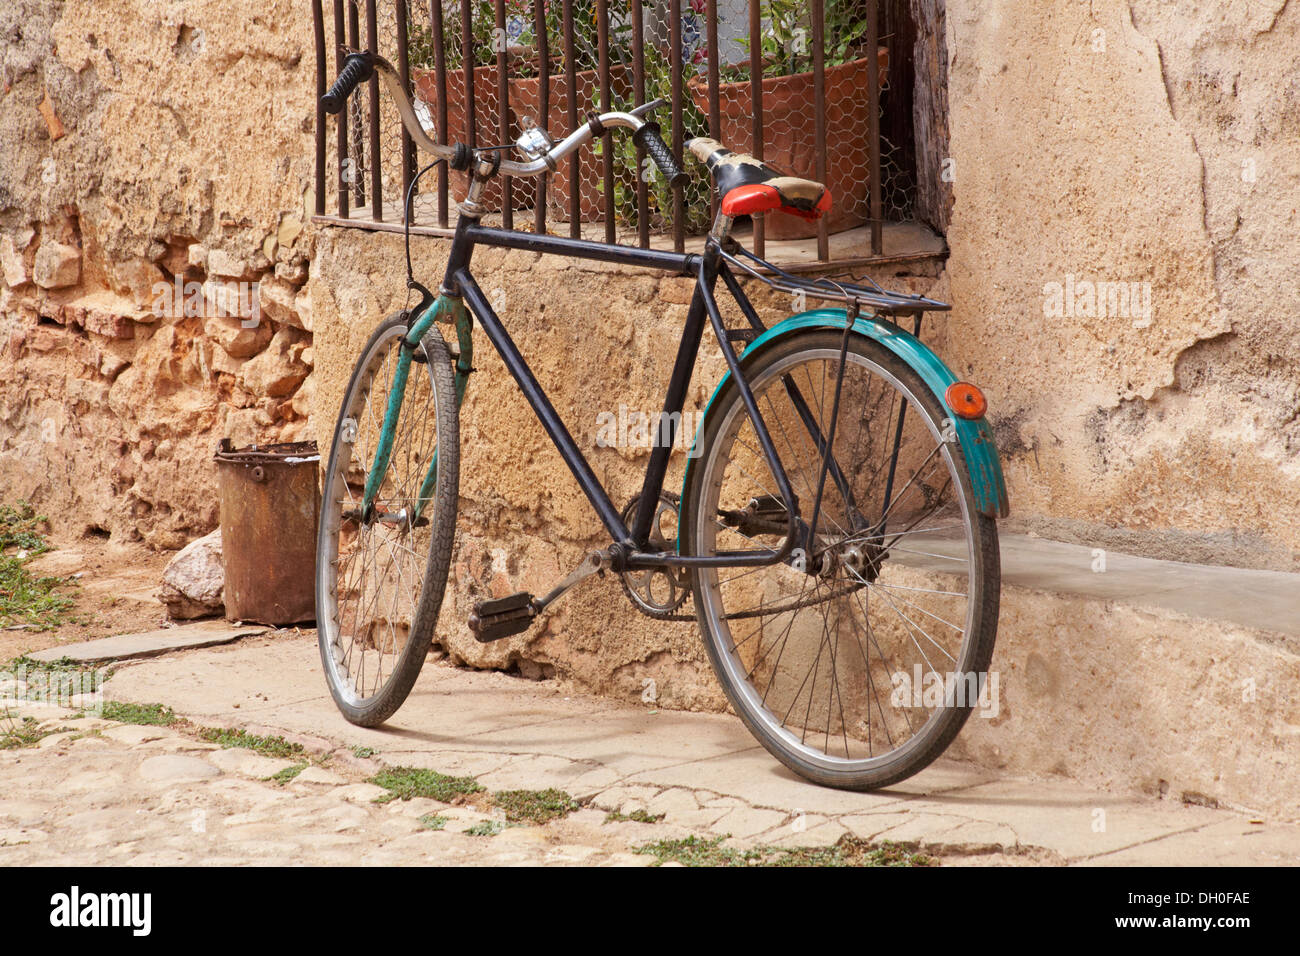 bicycle leant against railings at Trinidad, Cuba, West Indies, Caribbean, Central America in March - Stock Image